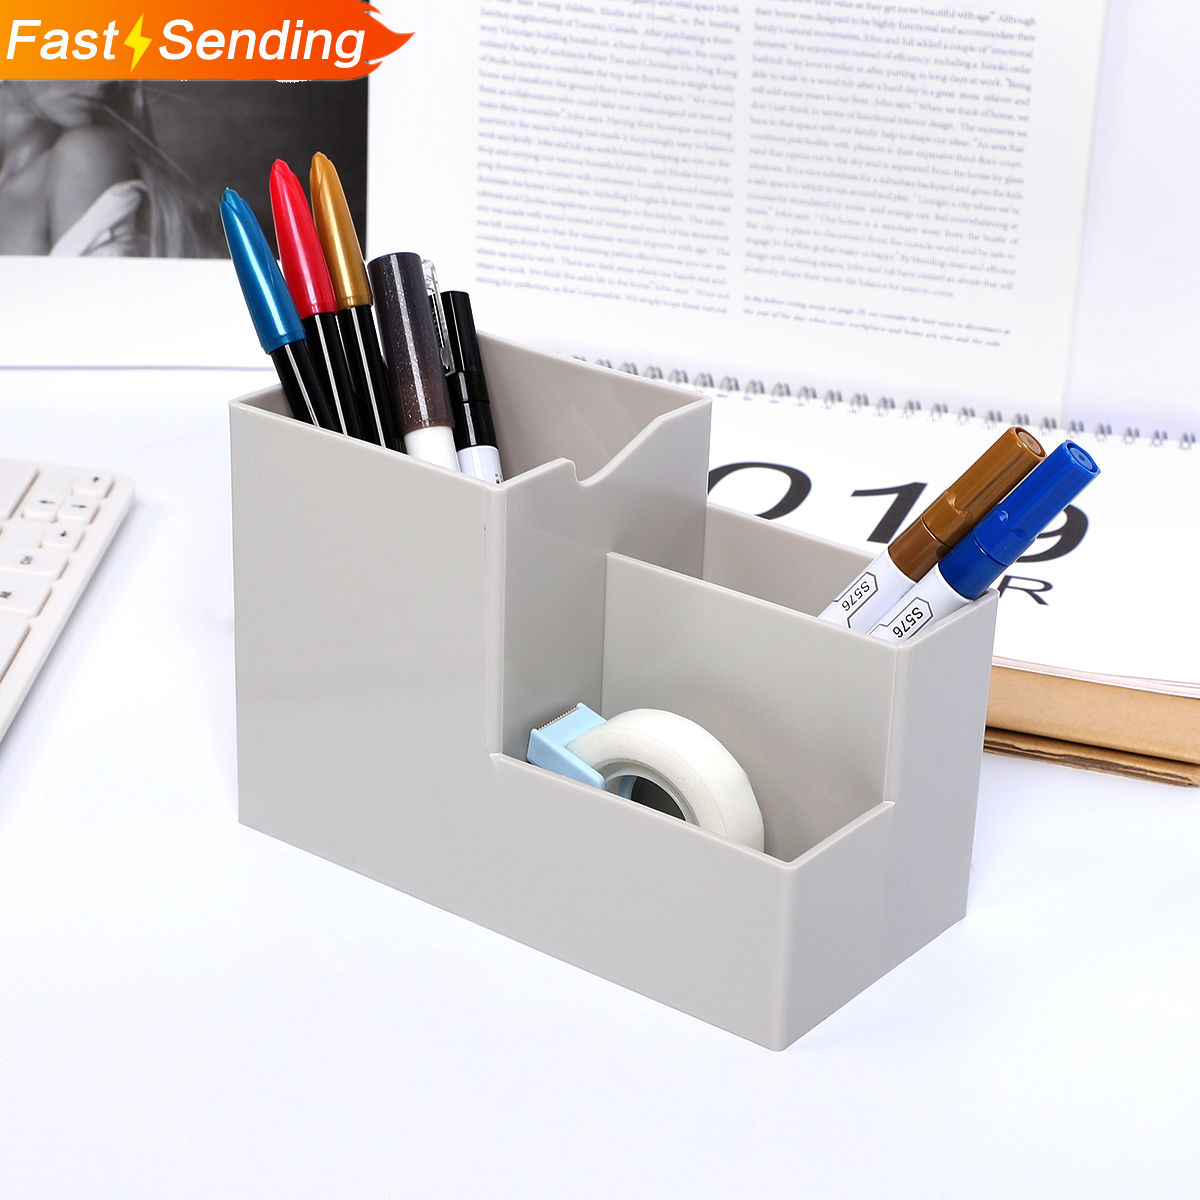 JIANWU 1pc Creative Multi-function Penholder Desktop Debris Storage Box Cute Desk Accessories Kawaii Desk Organizer